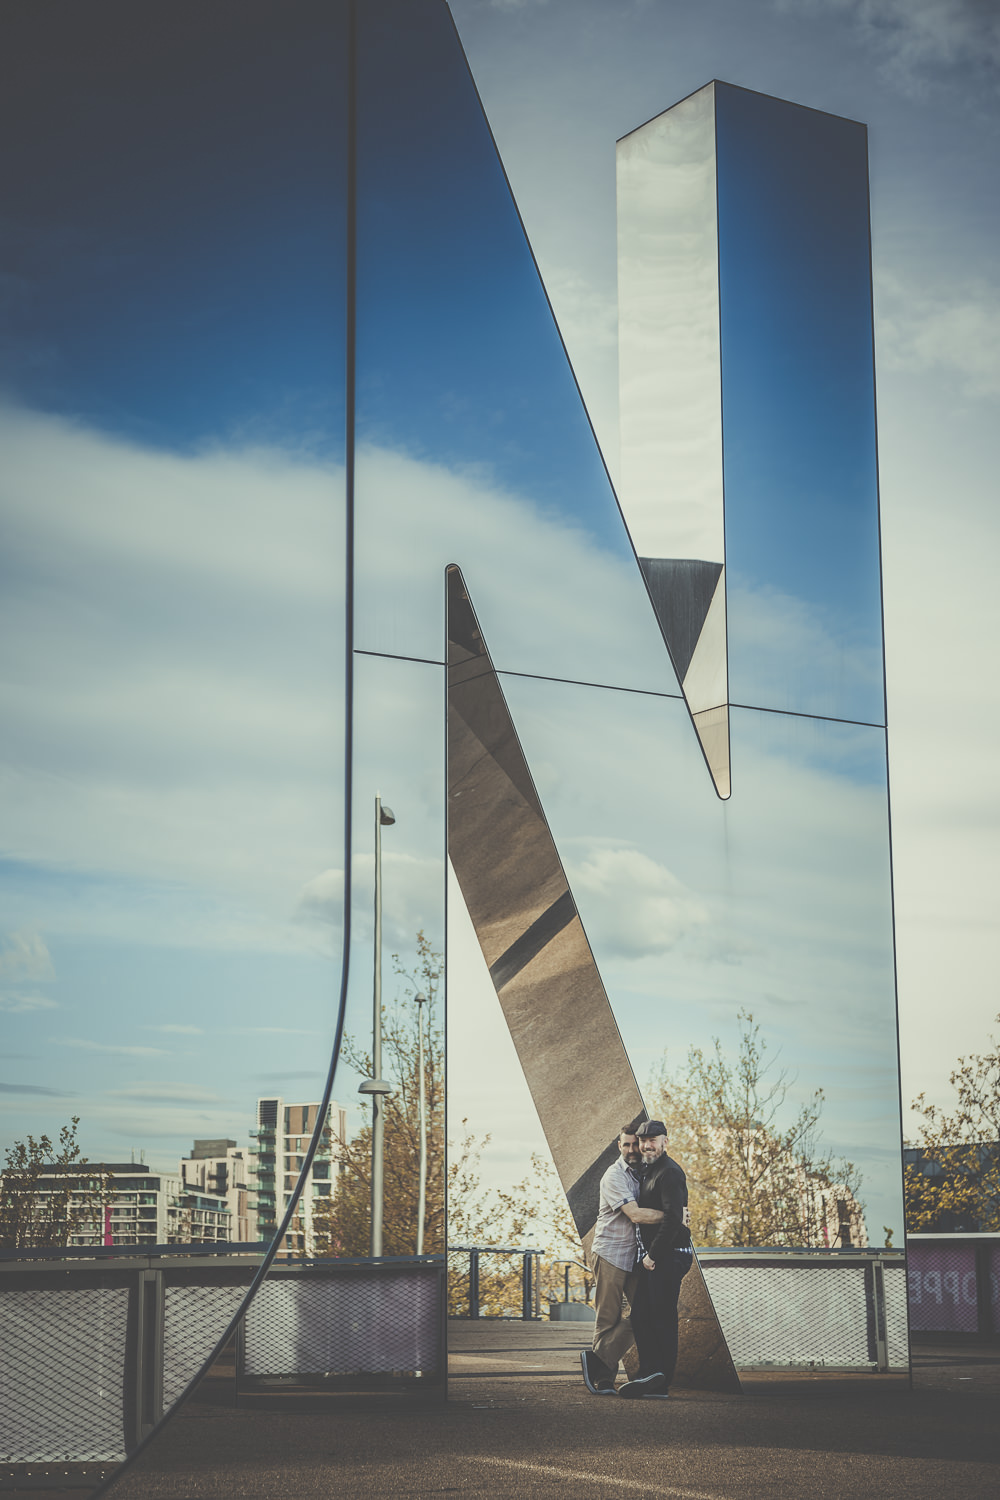 Phil-and-Tyrone-engagement-session-olympic-park-london-hampshire-wedding-photographer-4.jpg